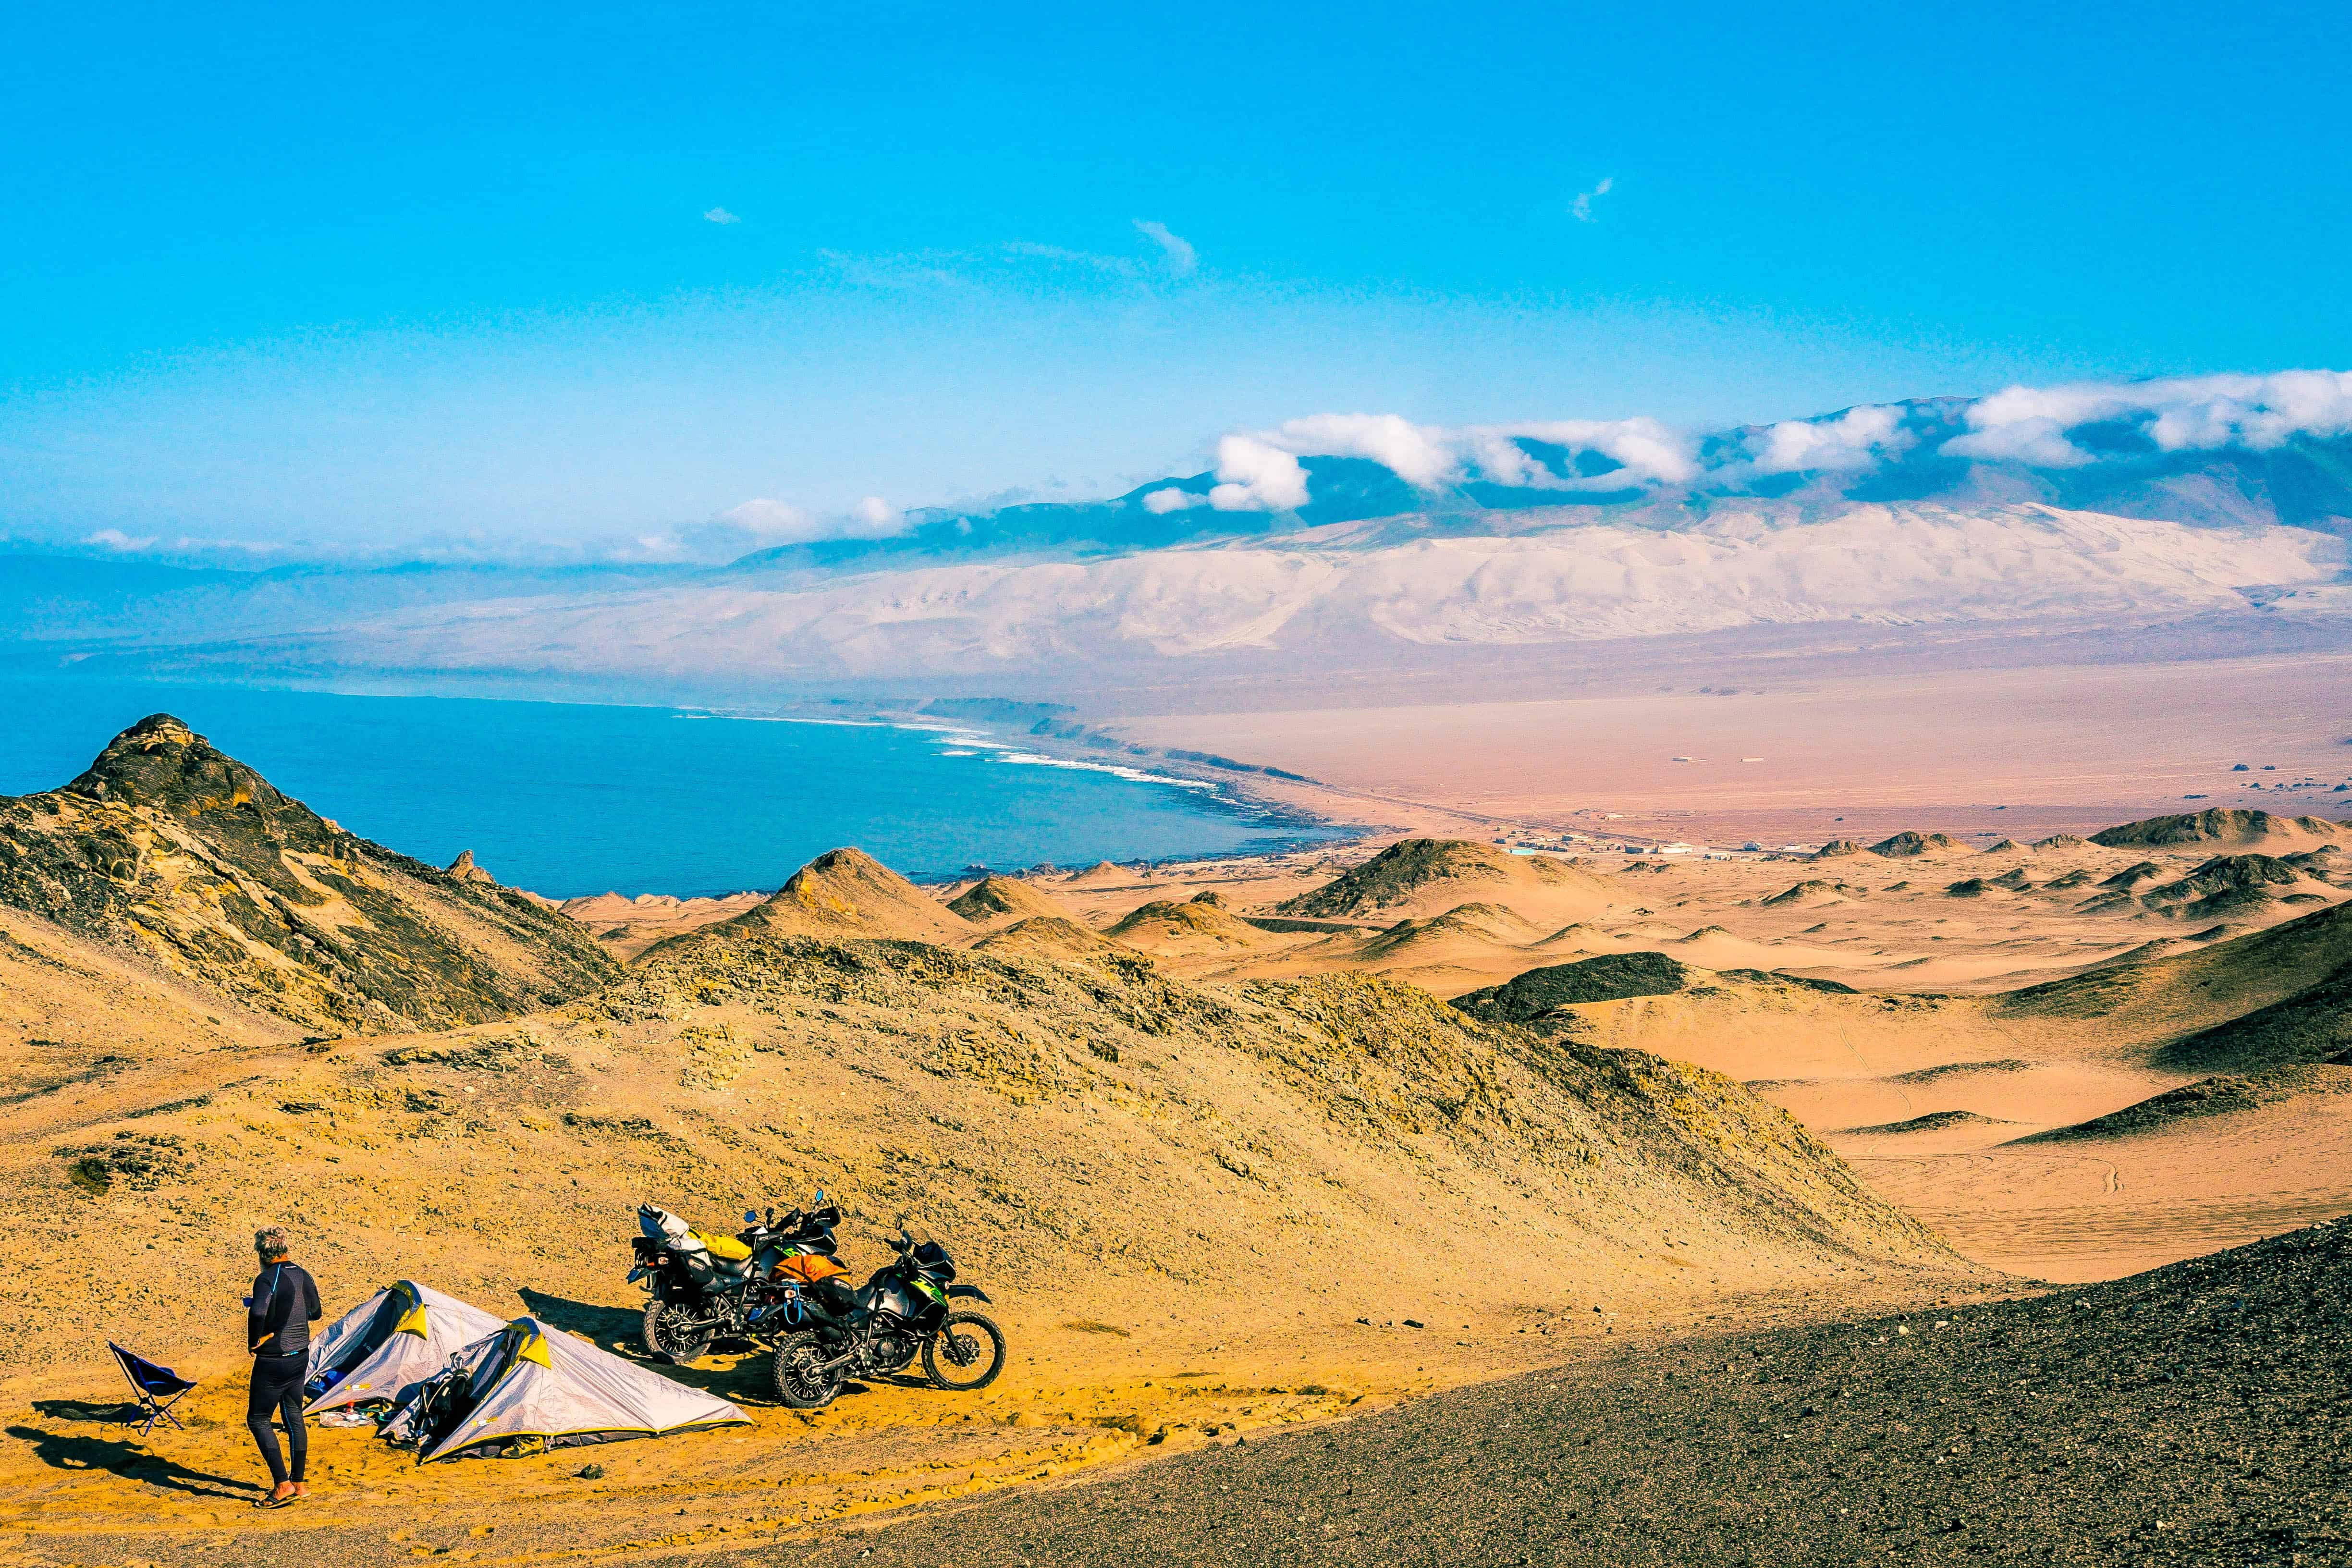 riding motorcycles along the pan americana to get to the 2019 dakar rally in Peru